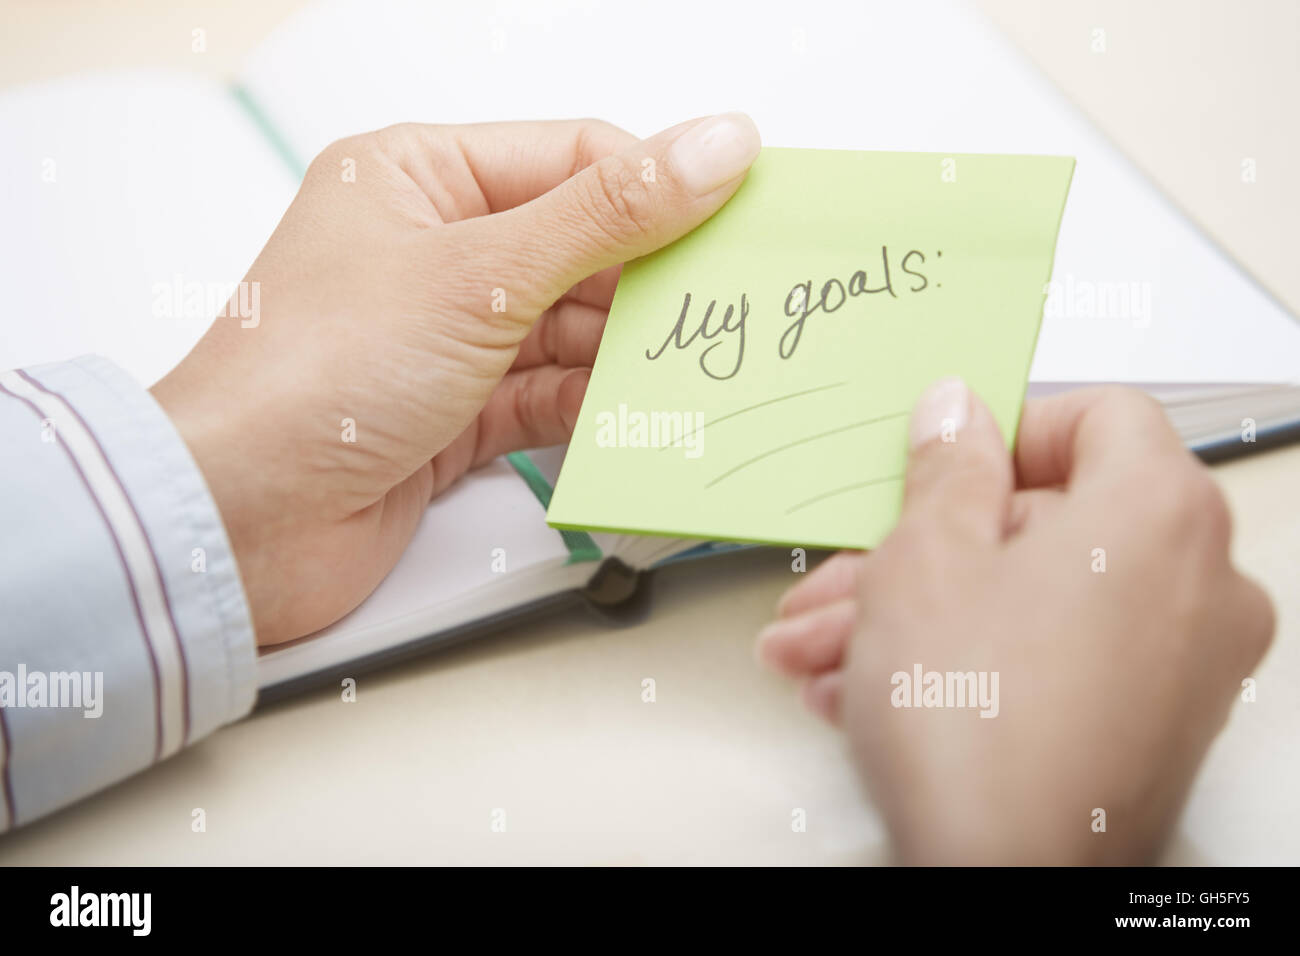 Hands holding green sticky note with planning of objectives Stock Photo